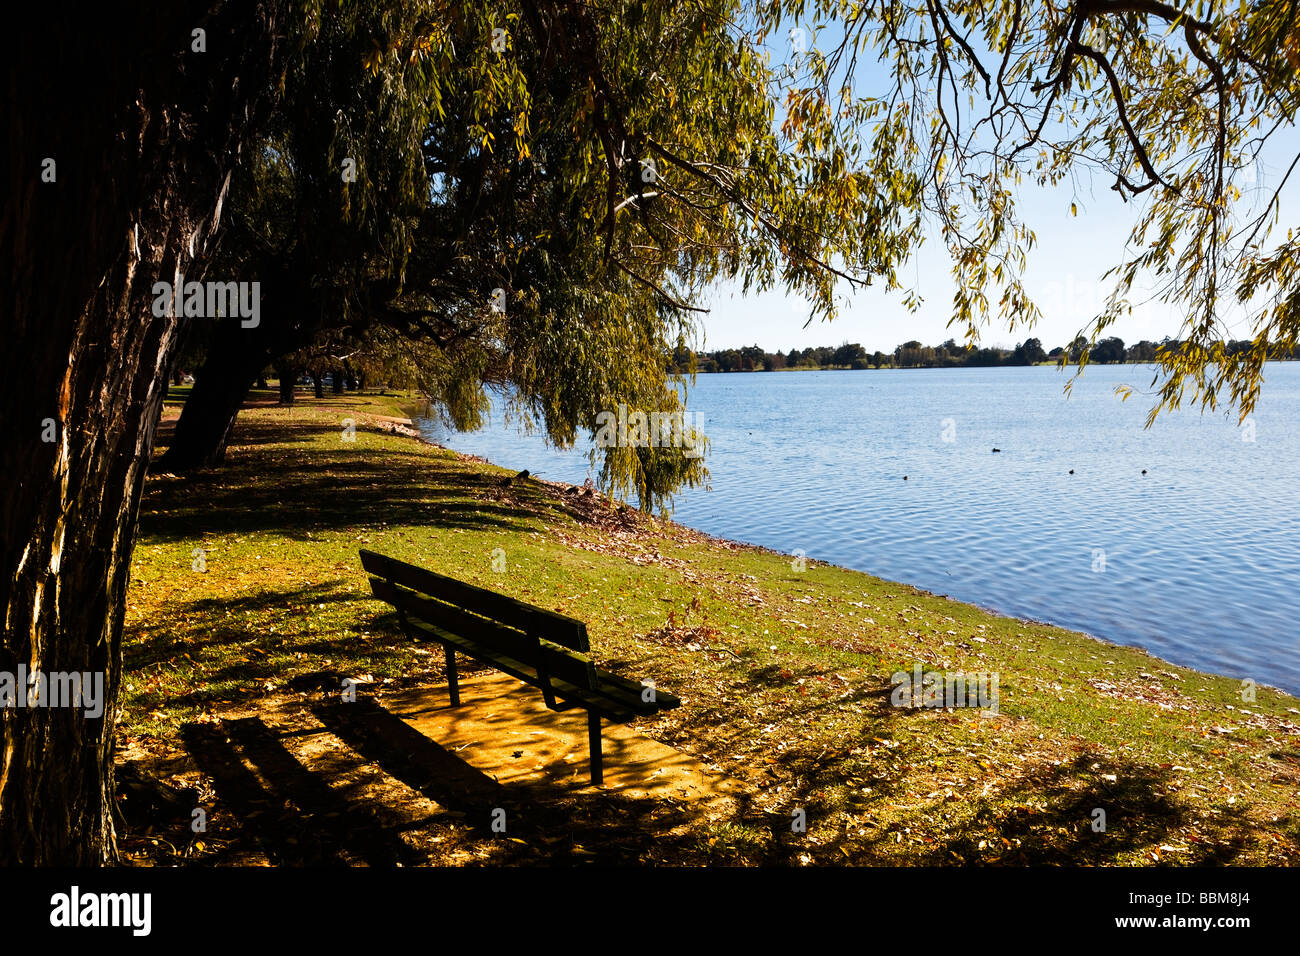 Trees By Lake on Autumn Day Gentle Lighting Seat Ducks Nearby - Stock Image